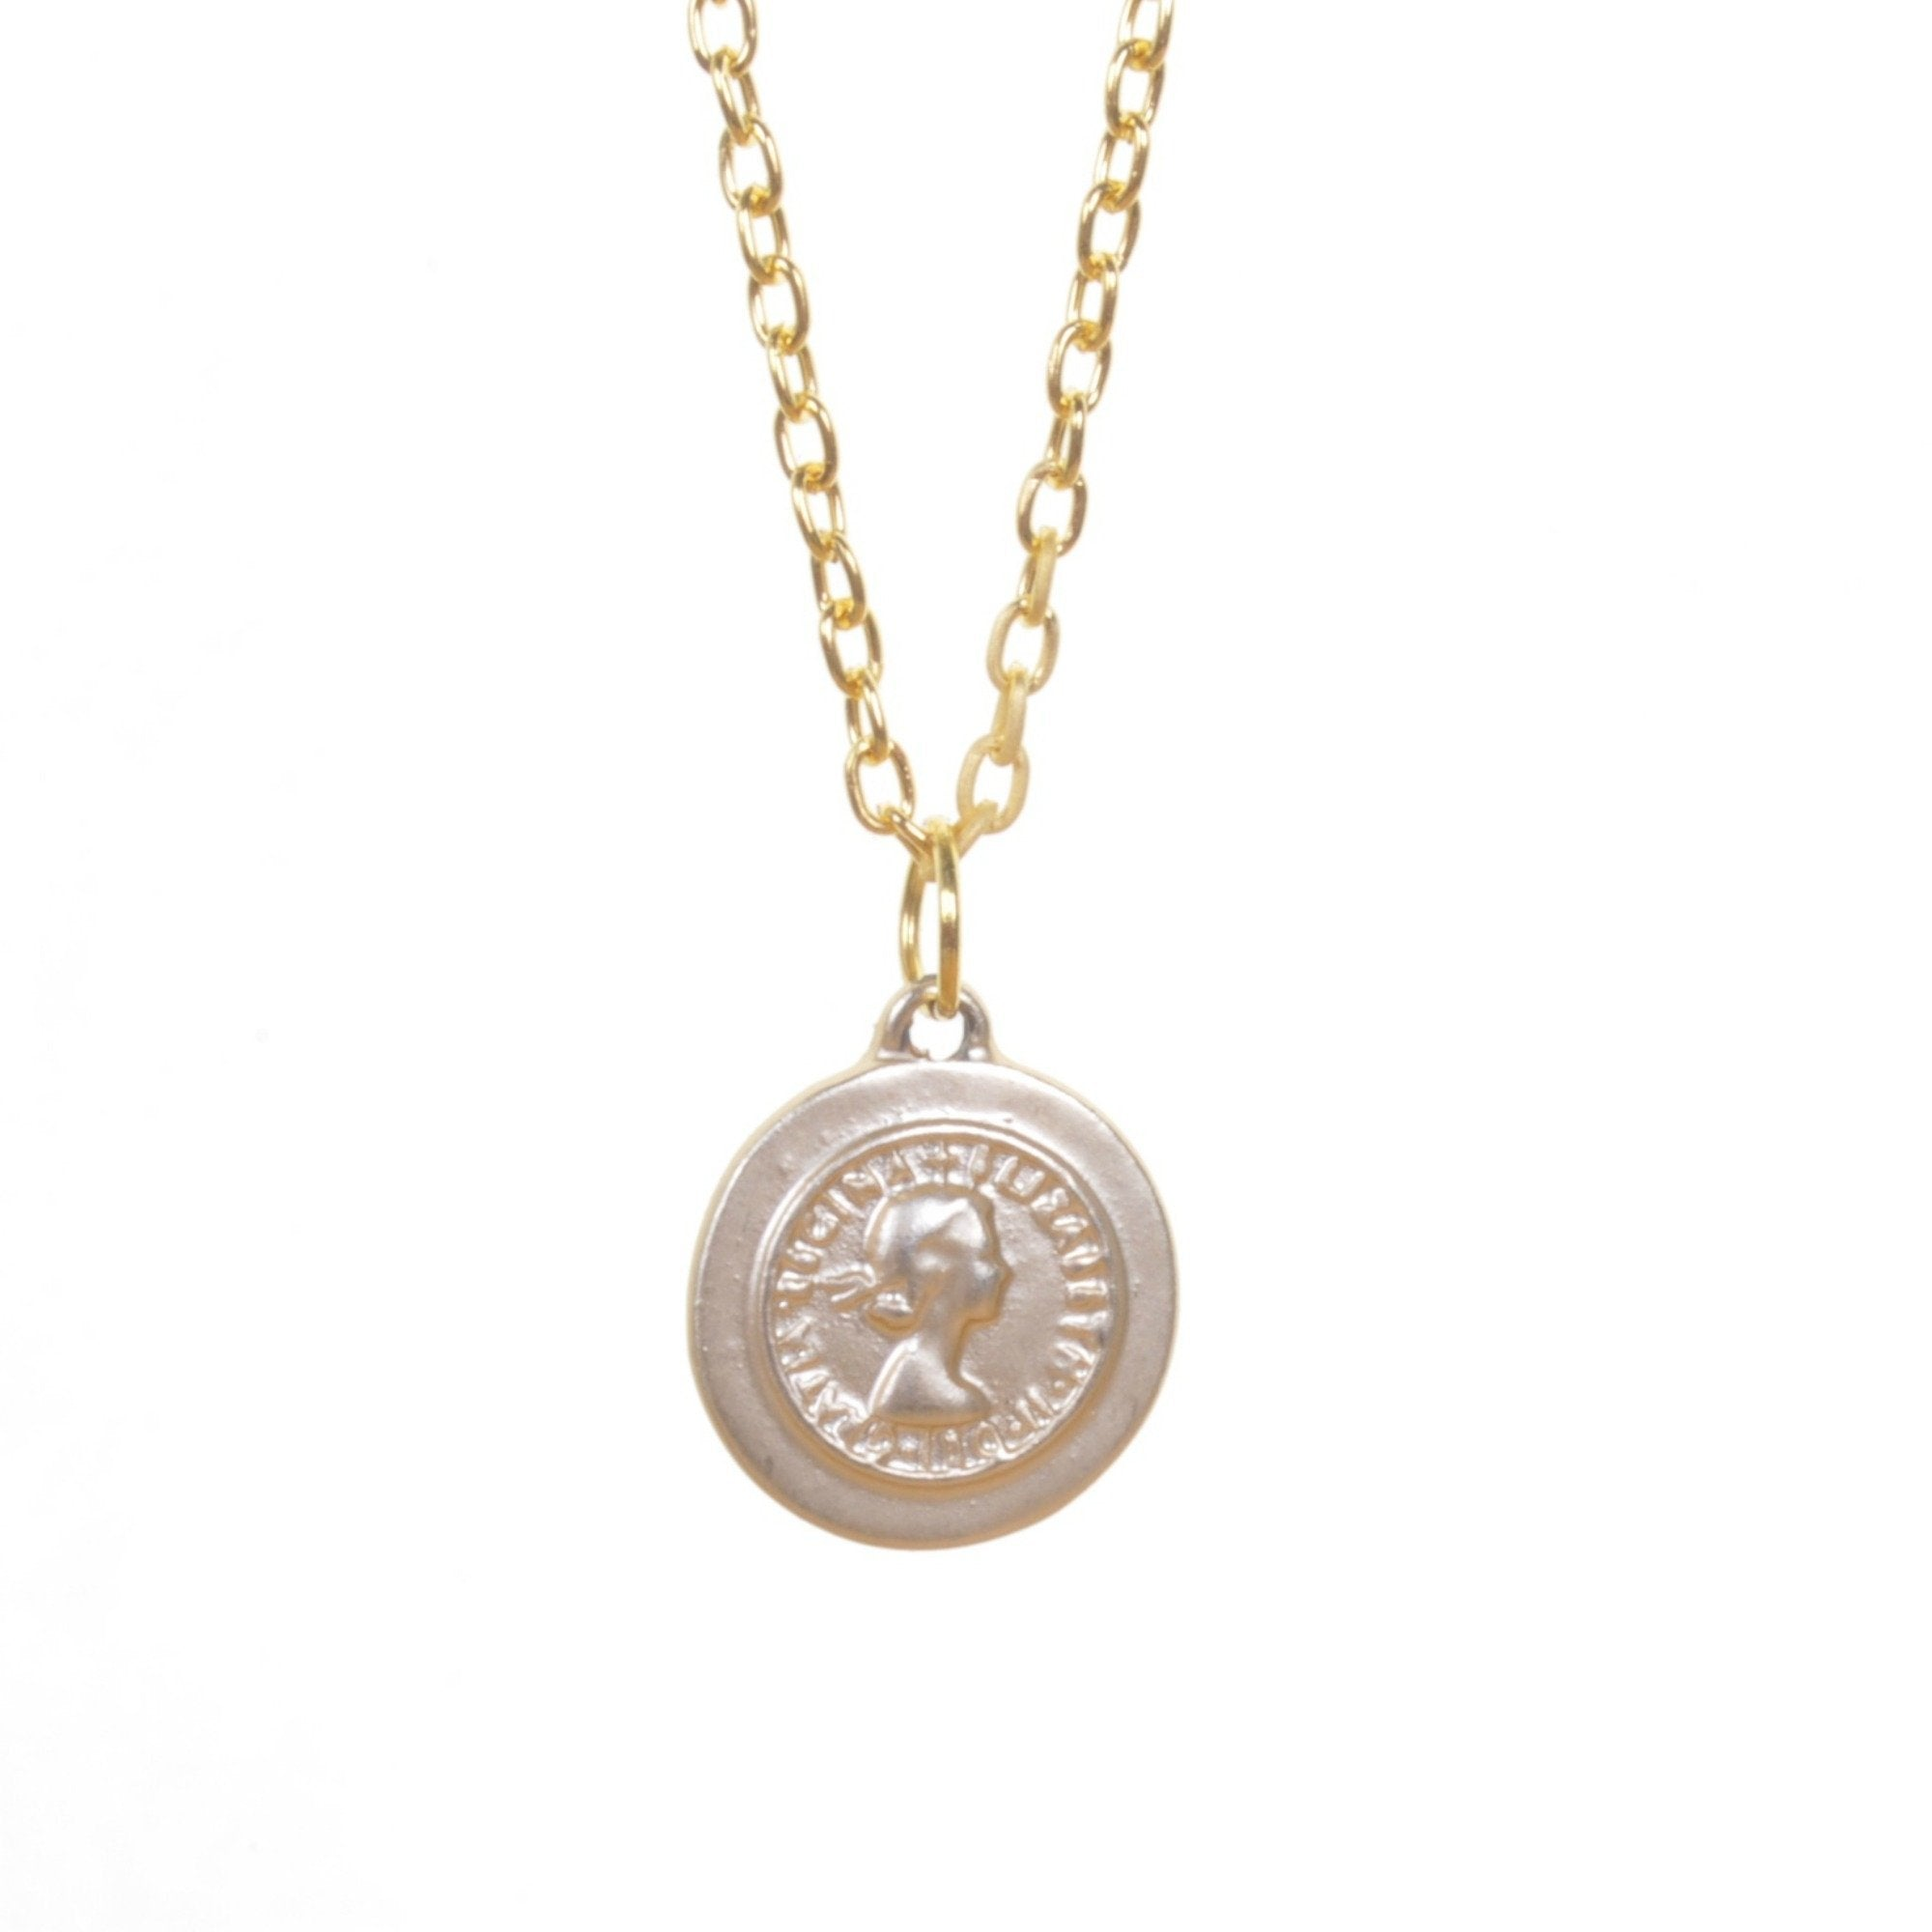 Gold Coin Pendant Necklace - Minimum Mouse